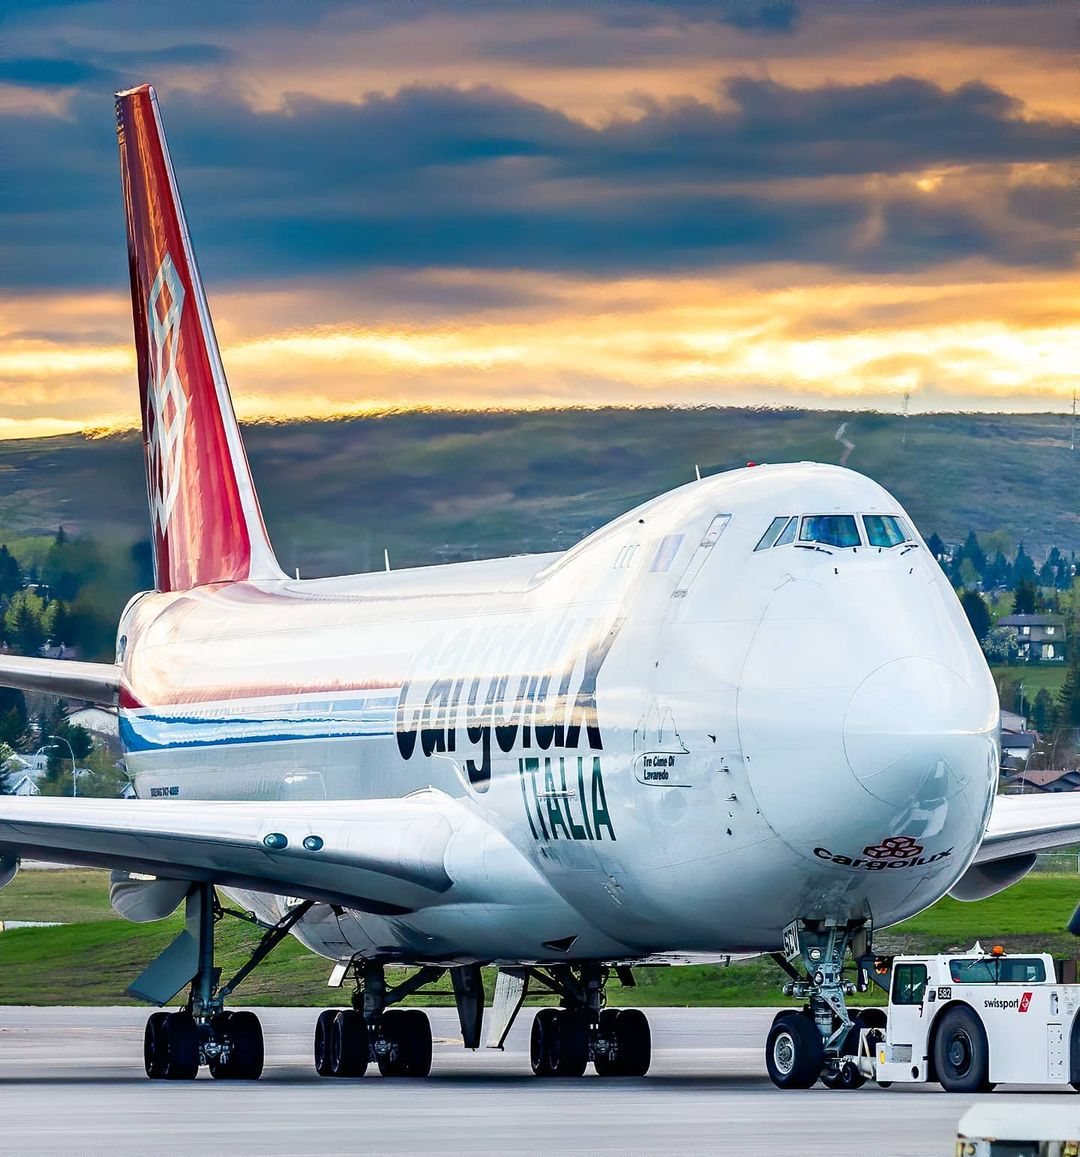 Cargolux Boeing 747-4R7(F) departing Calgary International Airport for Luxembourg. Photo submitted by Zach Thurston (Instagram user @ztp.yyc) using #skiesmag